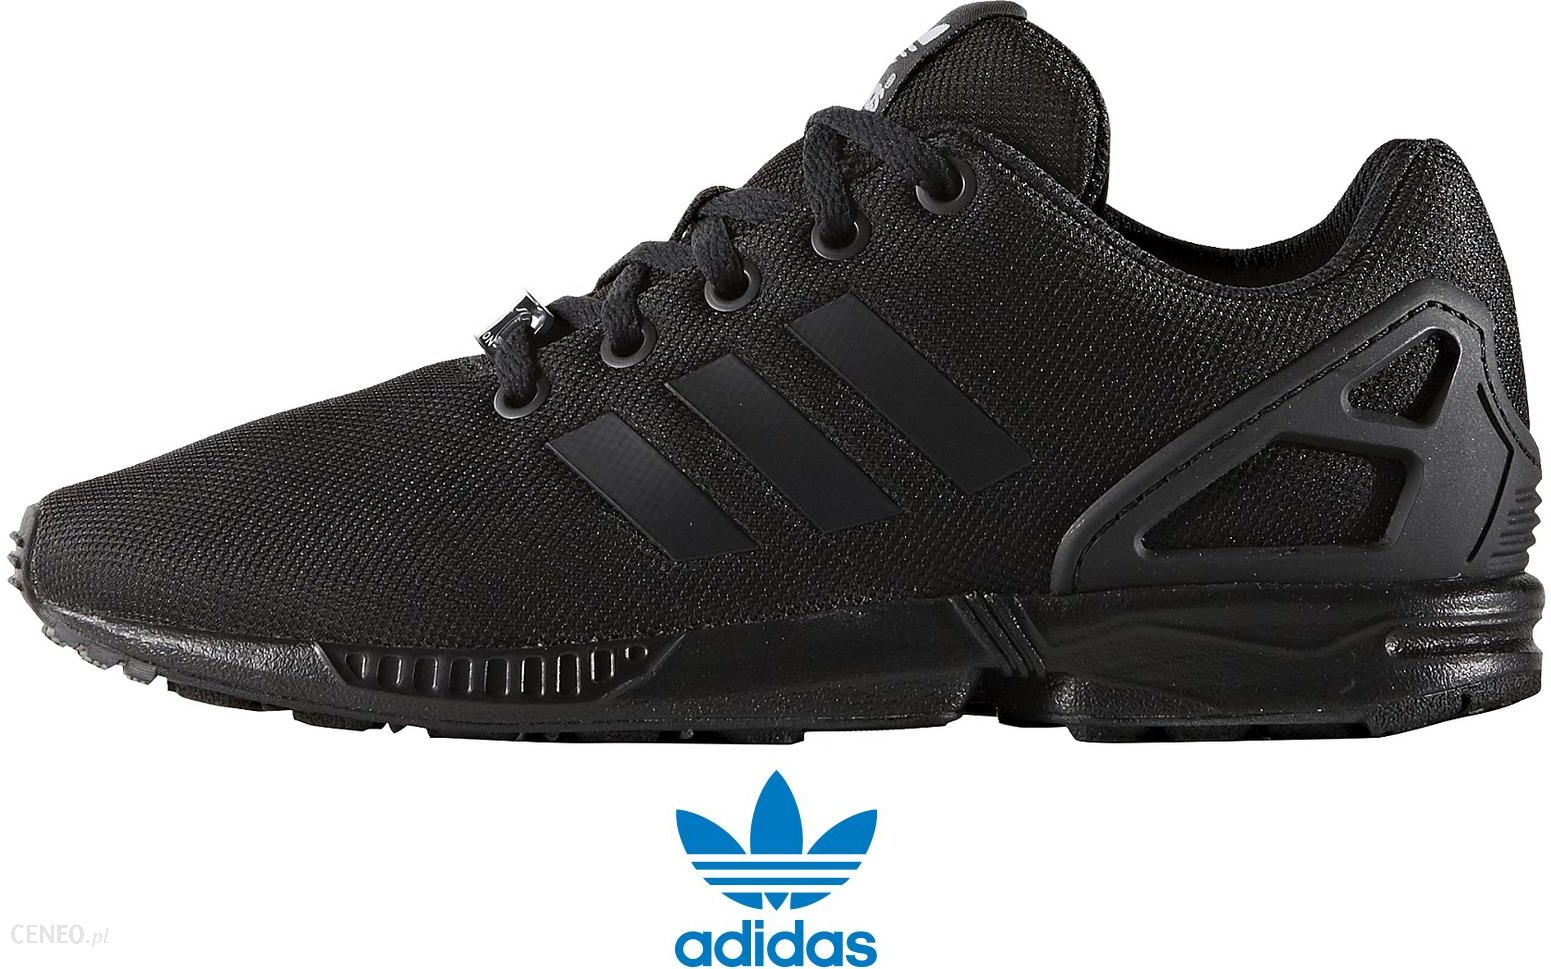 adidas originals zx flux junior black, Beckham Adidas